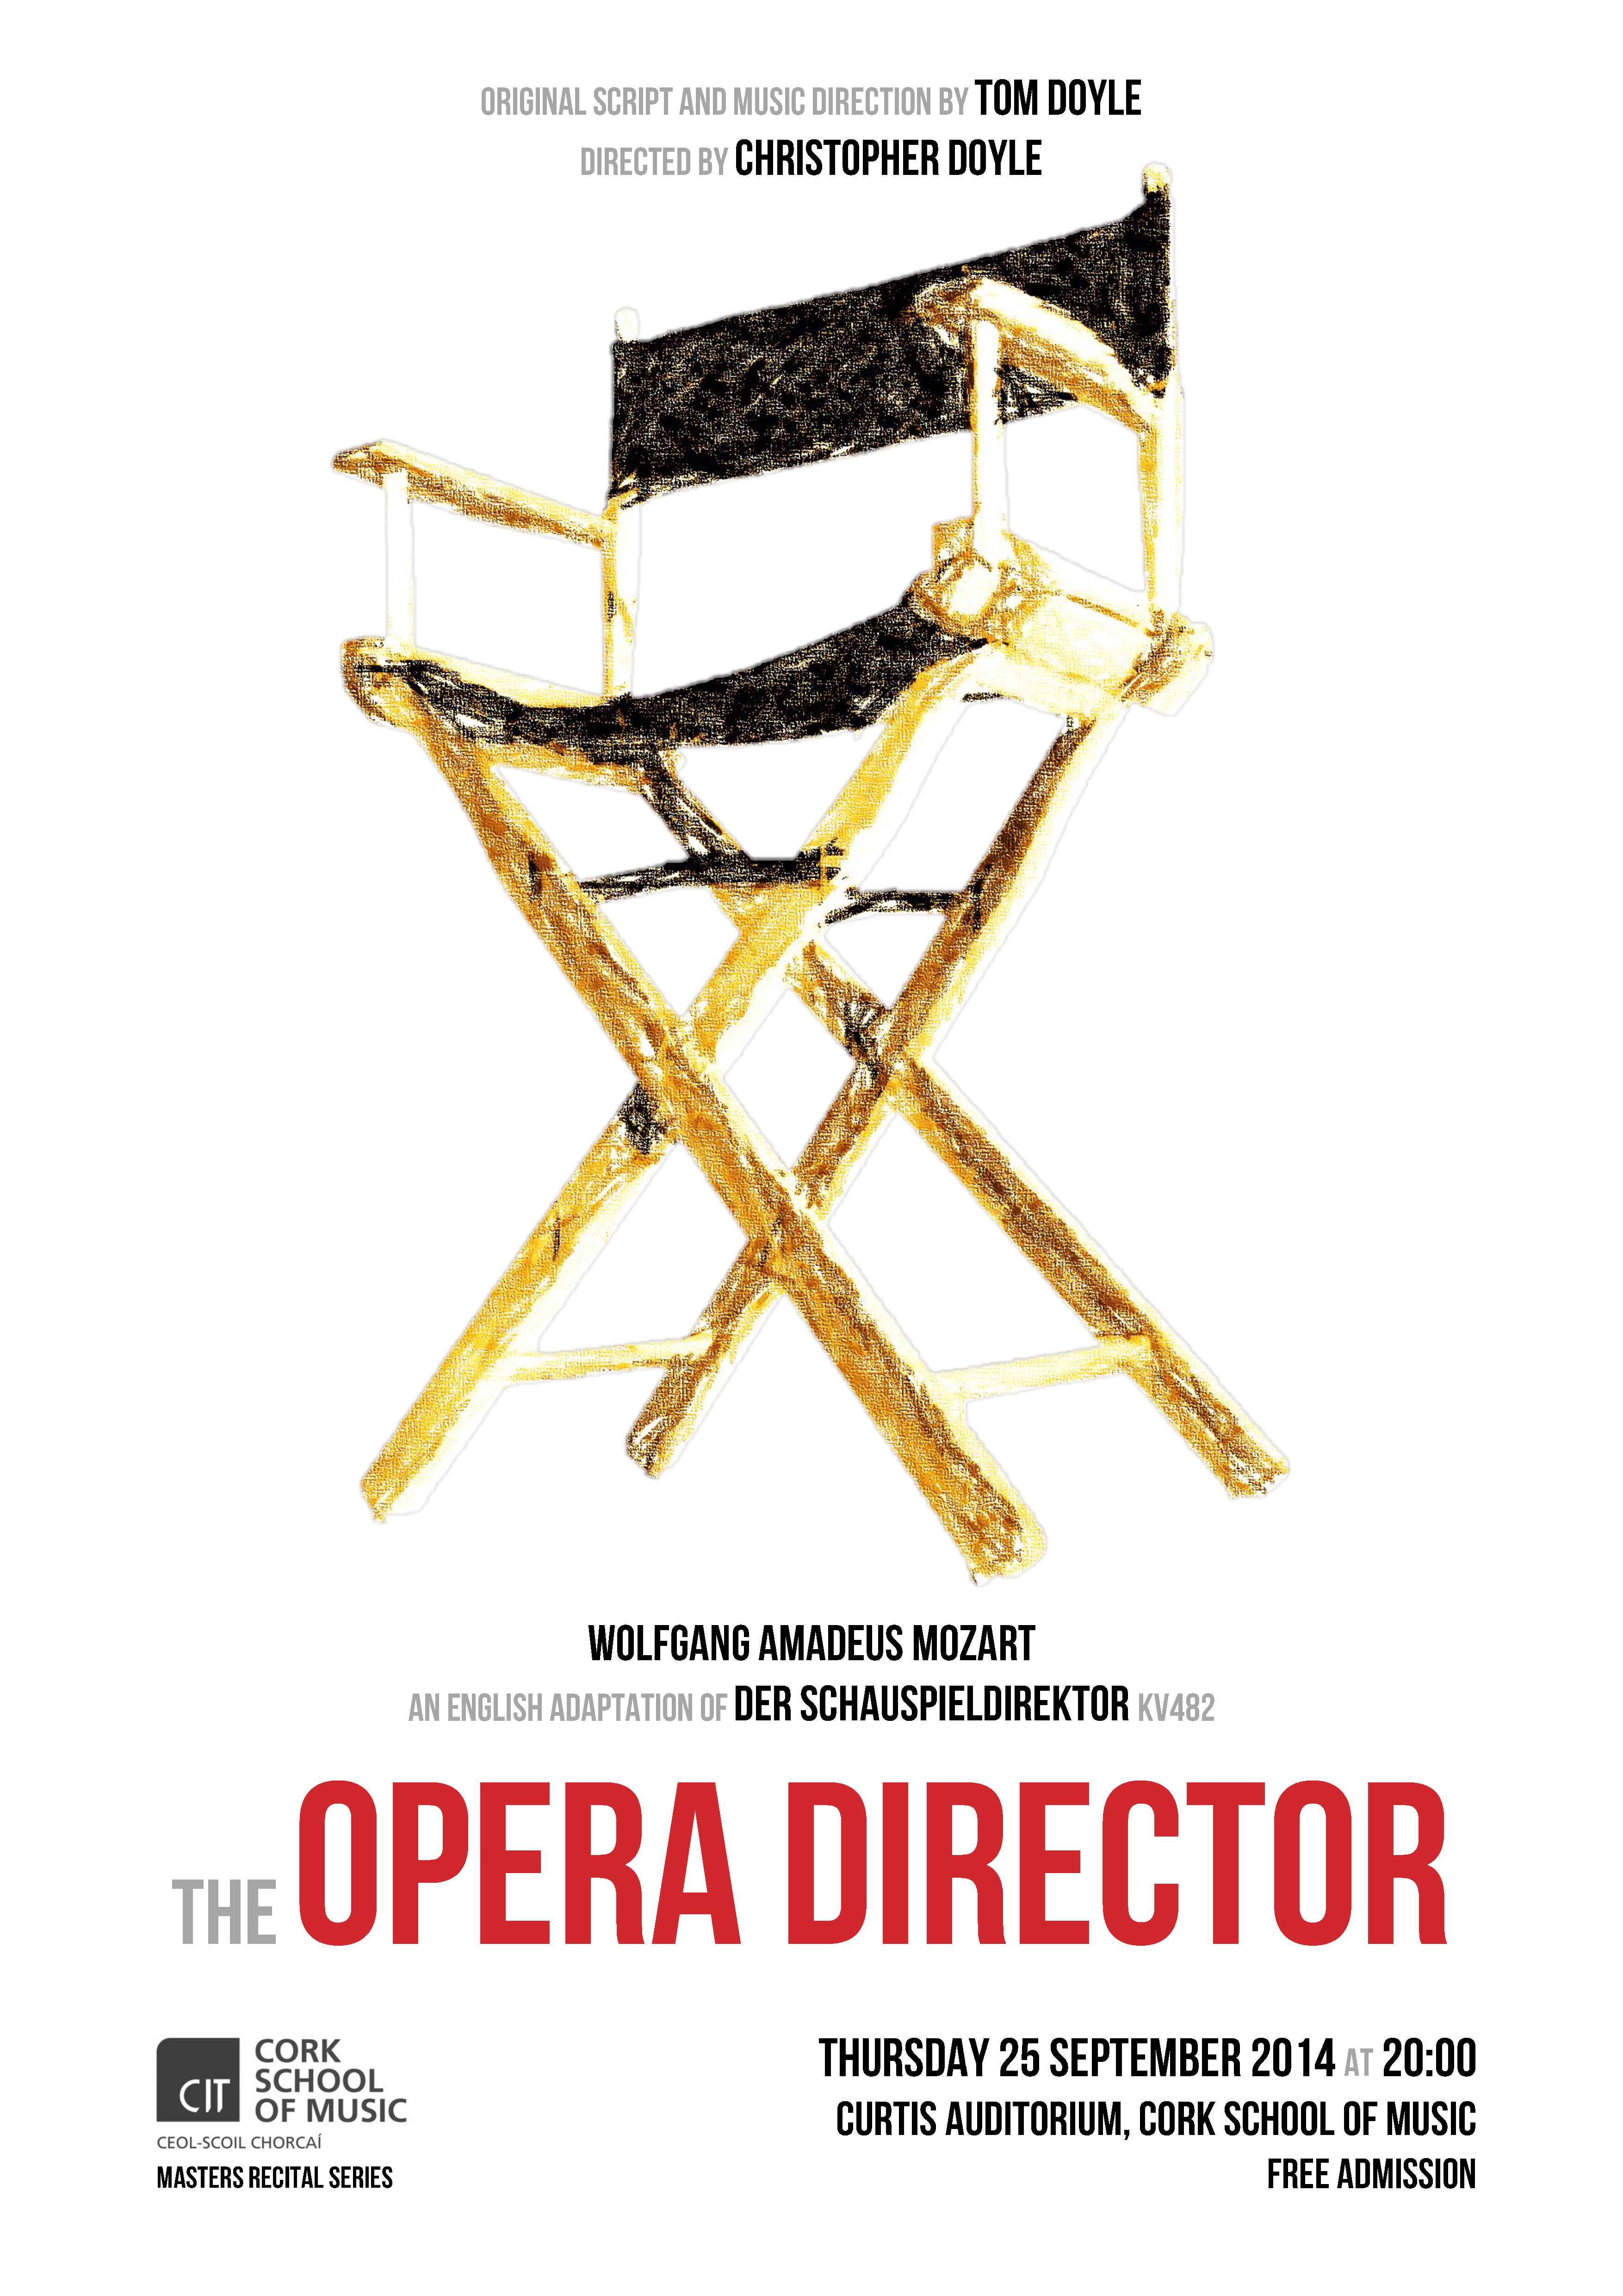 The OPERA DIRECTOR // Thursday 25 September 20:00